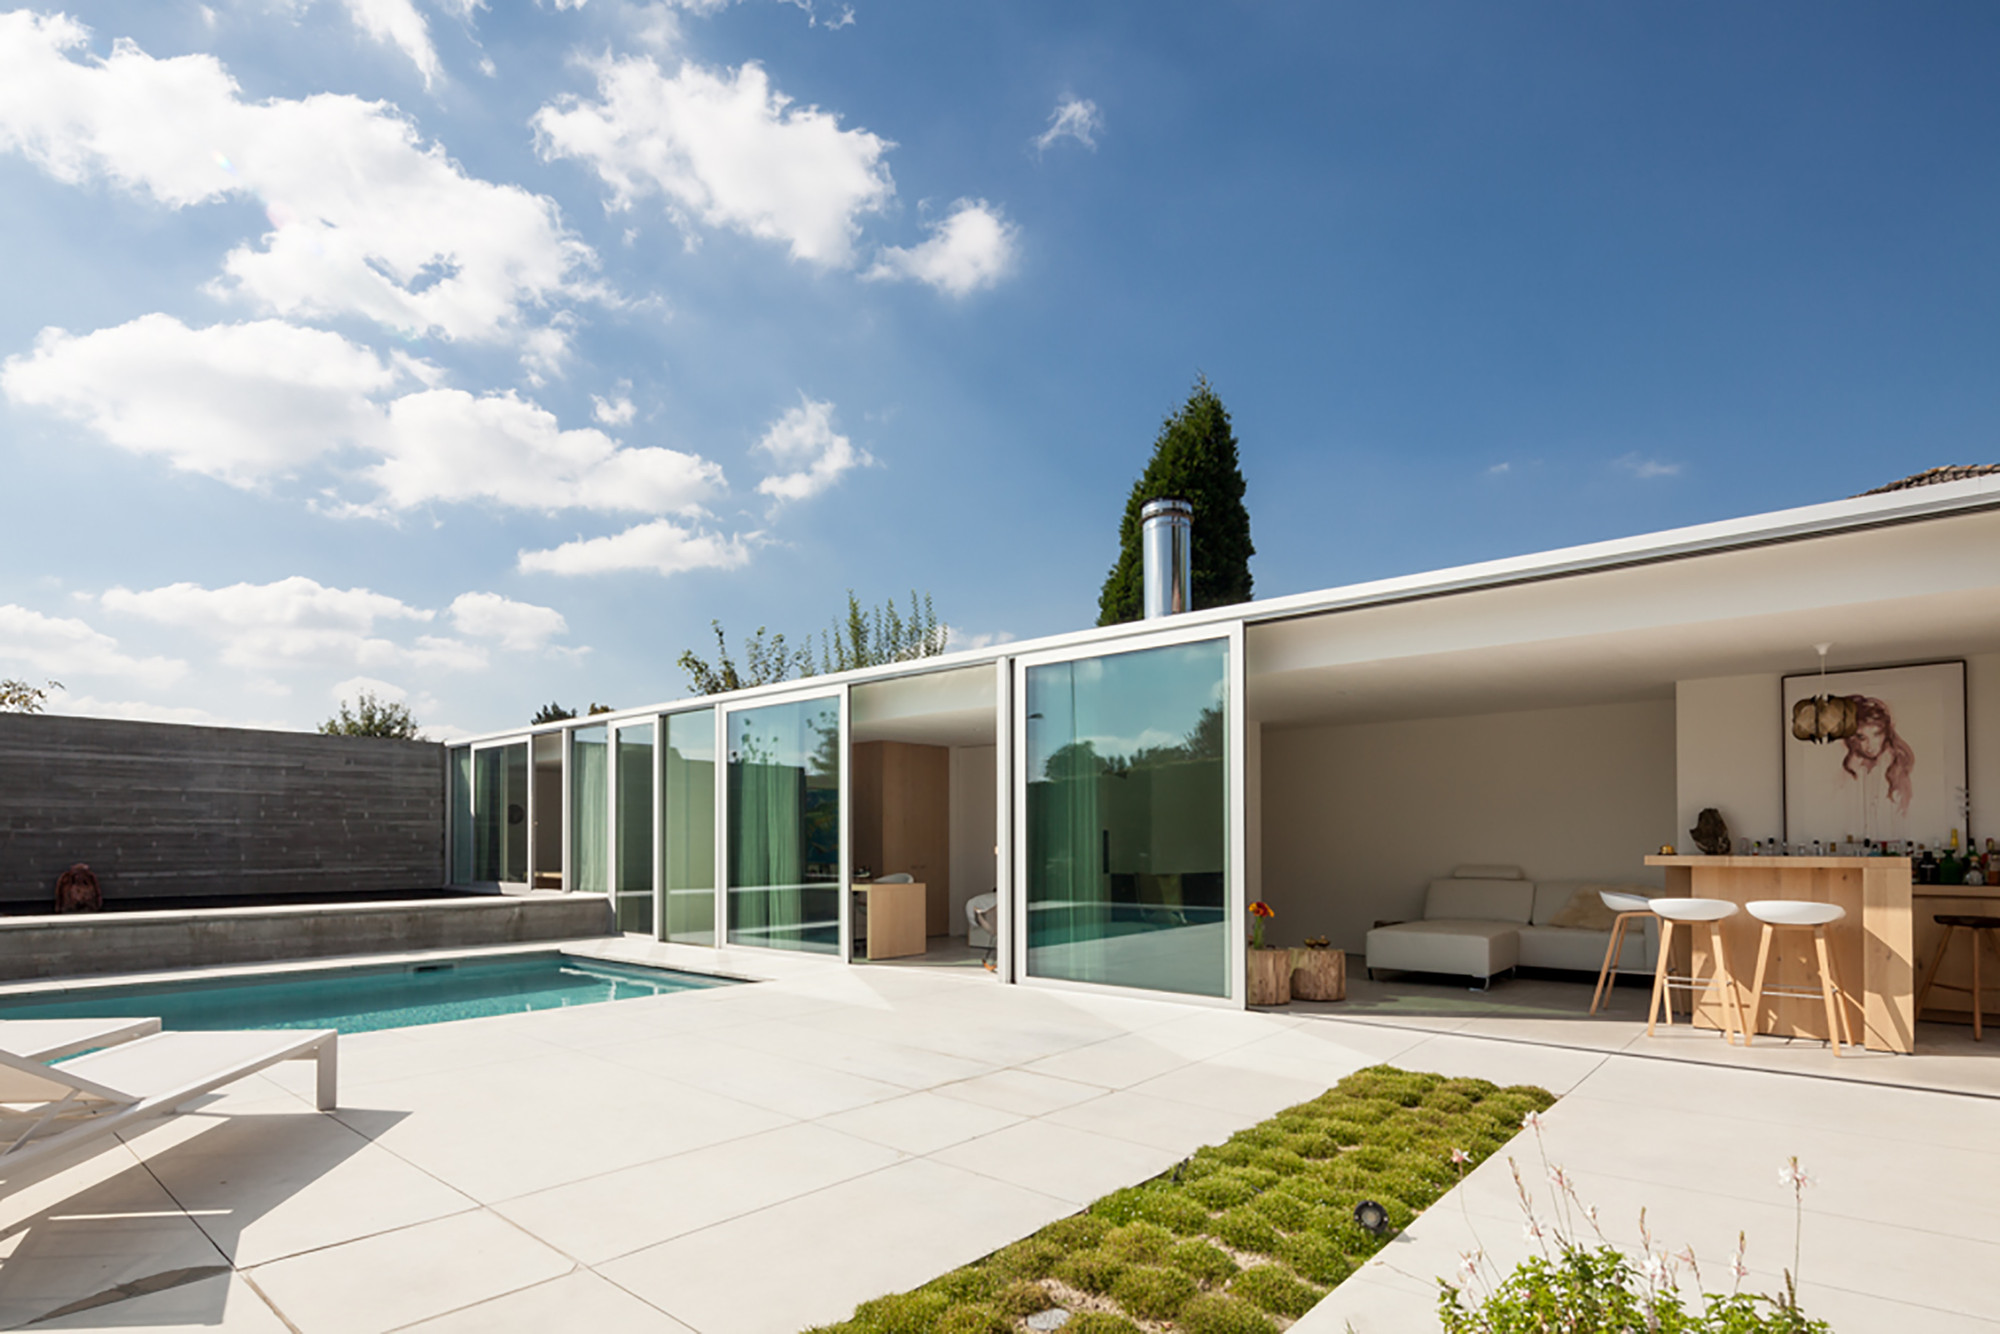 Poolhouse MRT Steven Vandenborre Architects C Tim Van De Velde